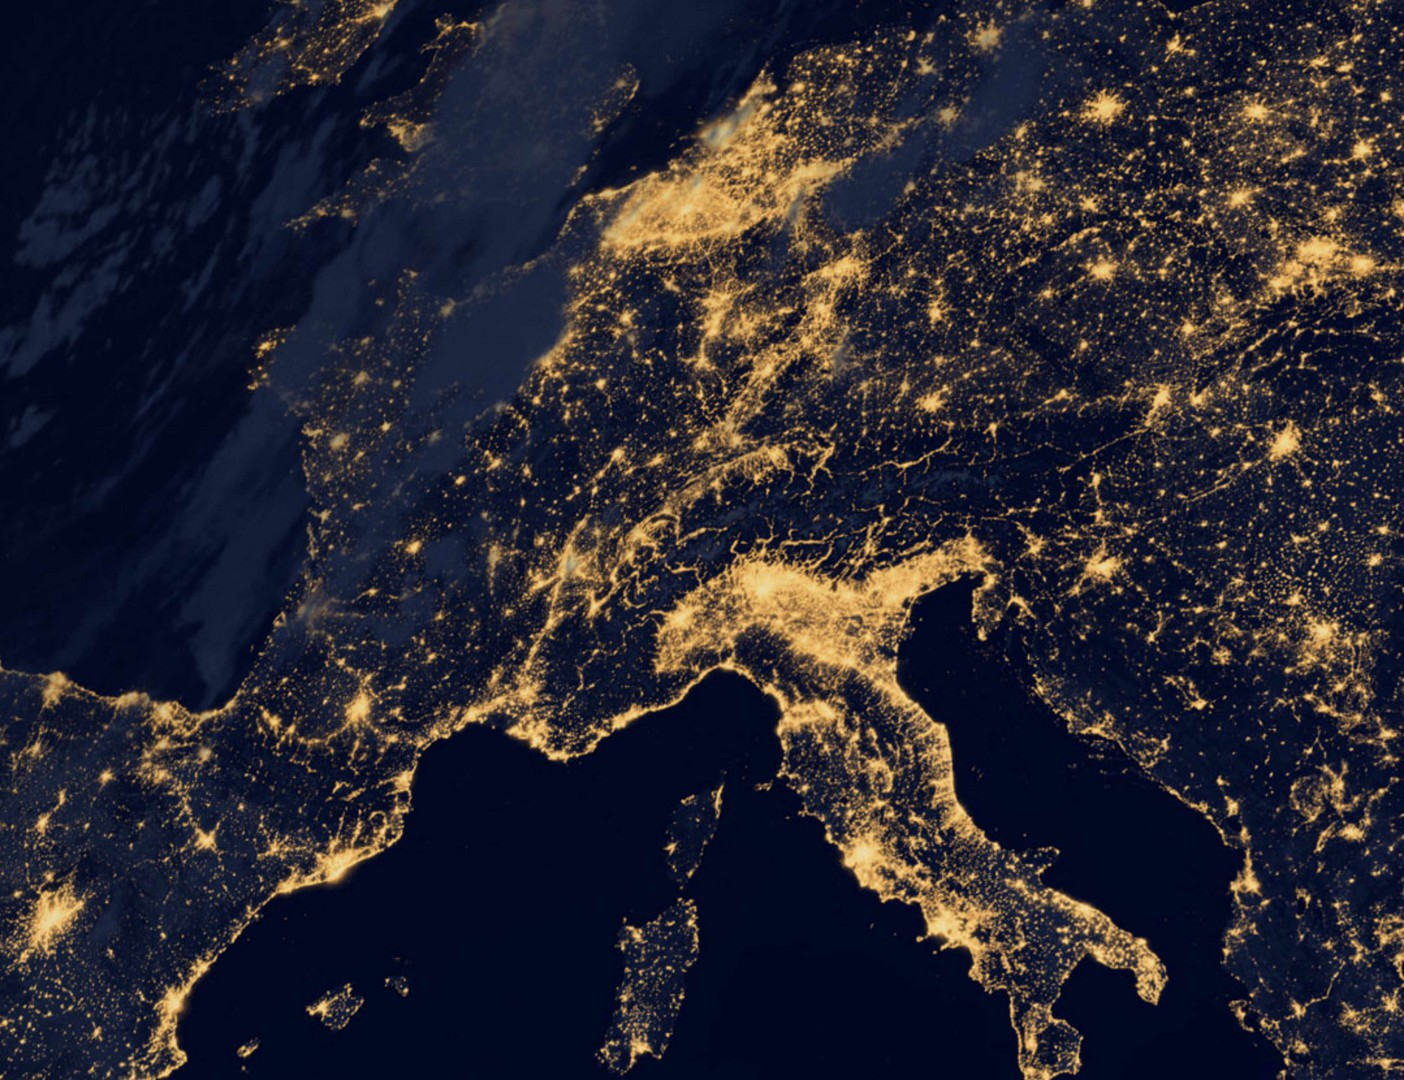 "This new image of Europe, Africa, and the Middle East at night is a composite assembled from data acquired by the Suomi NPP satellite in April and October 2012. The new data was mapped over existing Blue Marble imagery of Earth to provide a realistic view of the planet. The nighttime view was made possible by the new satellite's ""day-night band"" of the Visible Infrared Imaging Radiometer Suite. VIIRS detects light in a range of wavelengths from green to near-infrared and uses filtering techniques to observe dim signals such as gas flares, auroras, wildfires, city lights, and reflected moonlight. In this case, auroras, fires, and other stray light have been removed to emphasize the city lights. ""Night time imagery provides an intuitively graspable view of our planet,"" says William Stefanov, senior remote sensing scientist for the International Space Station program office. ""They provide a fairly straightforward means to map urban versus rural areas, and to show where the major population centers are and where they are not."" Named for satellite meteorology pioneer Verner Suomi, NPP flies over any given point on Earth's surface twice each day at roughly 1:30 a.m. and p.m. The polar-orbiting satellite flies 824 kilometers (512 miles) above the surface, sending its data once per orbit to a ground station in Svalbard, Norway, and continuously to local direct broadcast users distributed around the world. The mission is managed by NASA with operational support from NOAA and its Joint Polar Satellite System, which manages the satellite's ground system. Learn more about the VIIRS day-night band and nighttime imaging of Earth in our new feature story: Out of the Blue and Into the Black. NASA Earth Observatory image by Robert Simmon, using Suomi NPP VIIRS data provided courtesy of Chris Elvidge (NOAA National Geophysical Data Center). Suomi NPP is the result of a partnership between NASA, NOAA, and the Department of Defense. Caption by Mike Carlowicz. Instrument:  Suomi NPP - VIIRS"